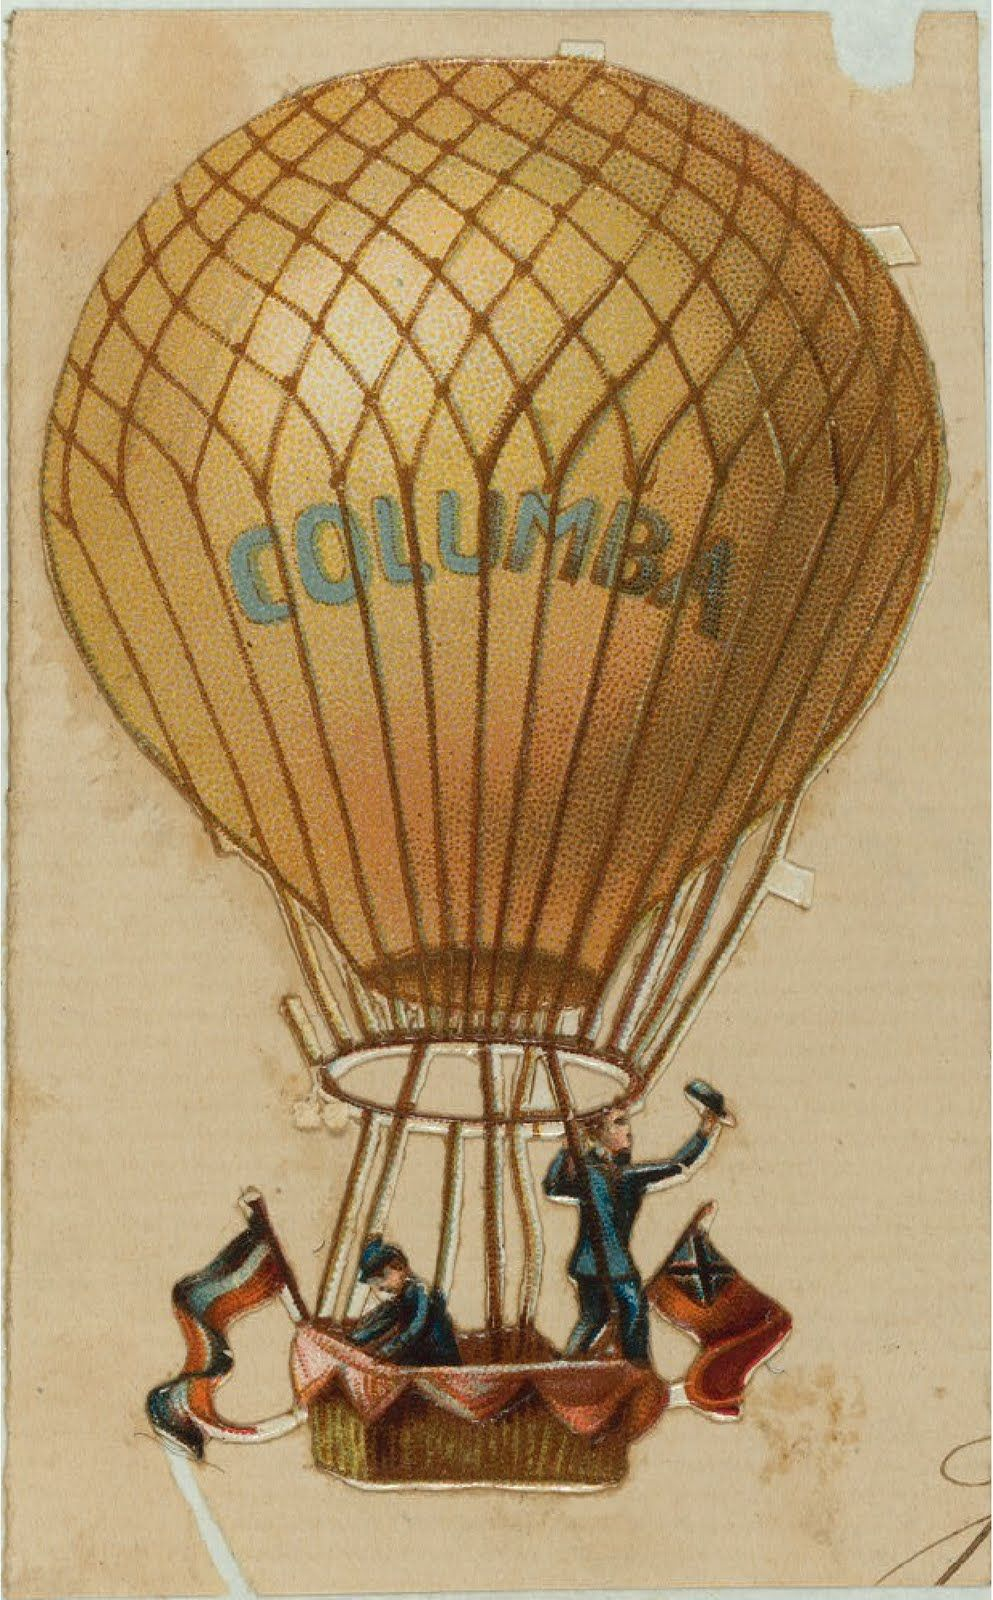 Vintage Hot Air Balloon | Here are some great images and ...